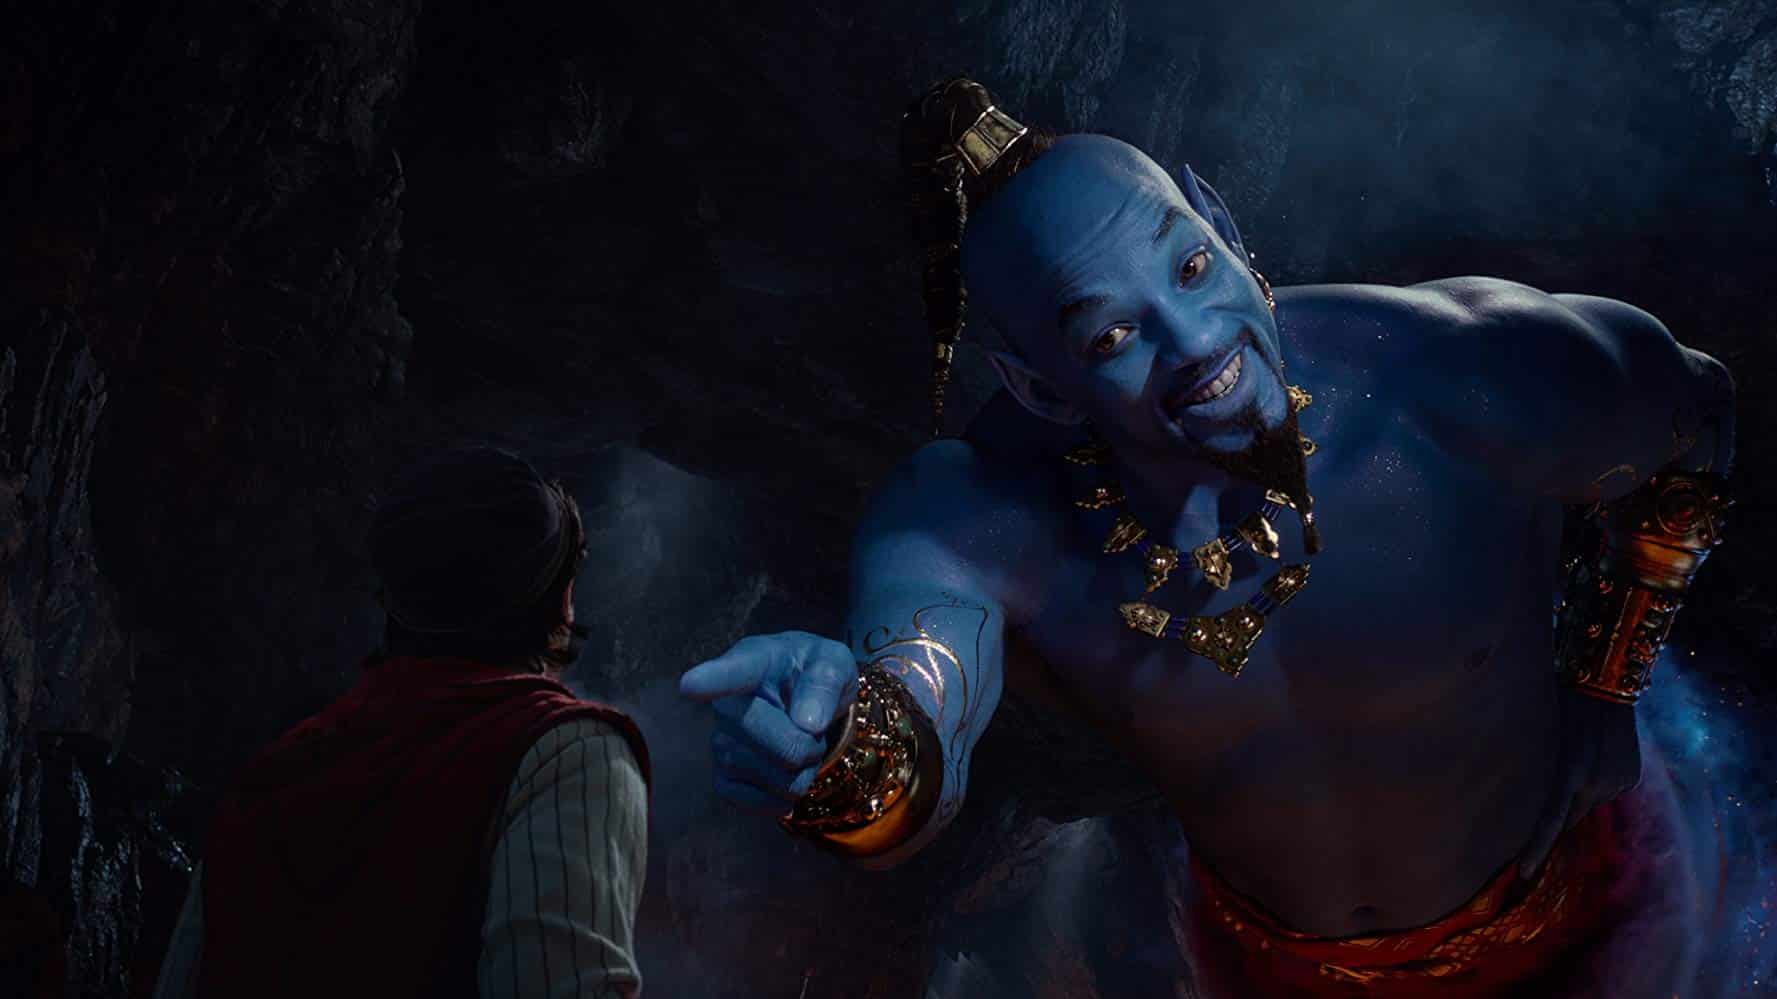 El live-action de Aladdin libera tráiler completo con Will Smith